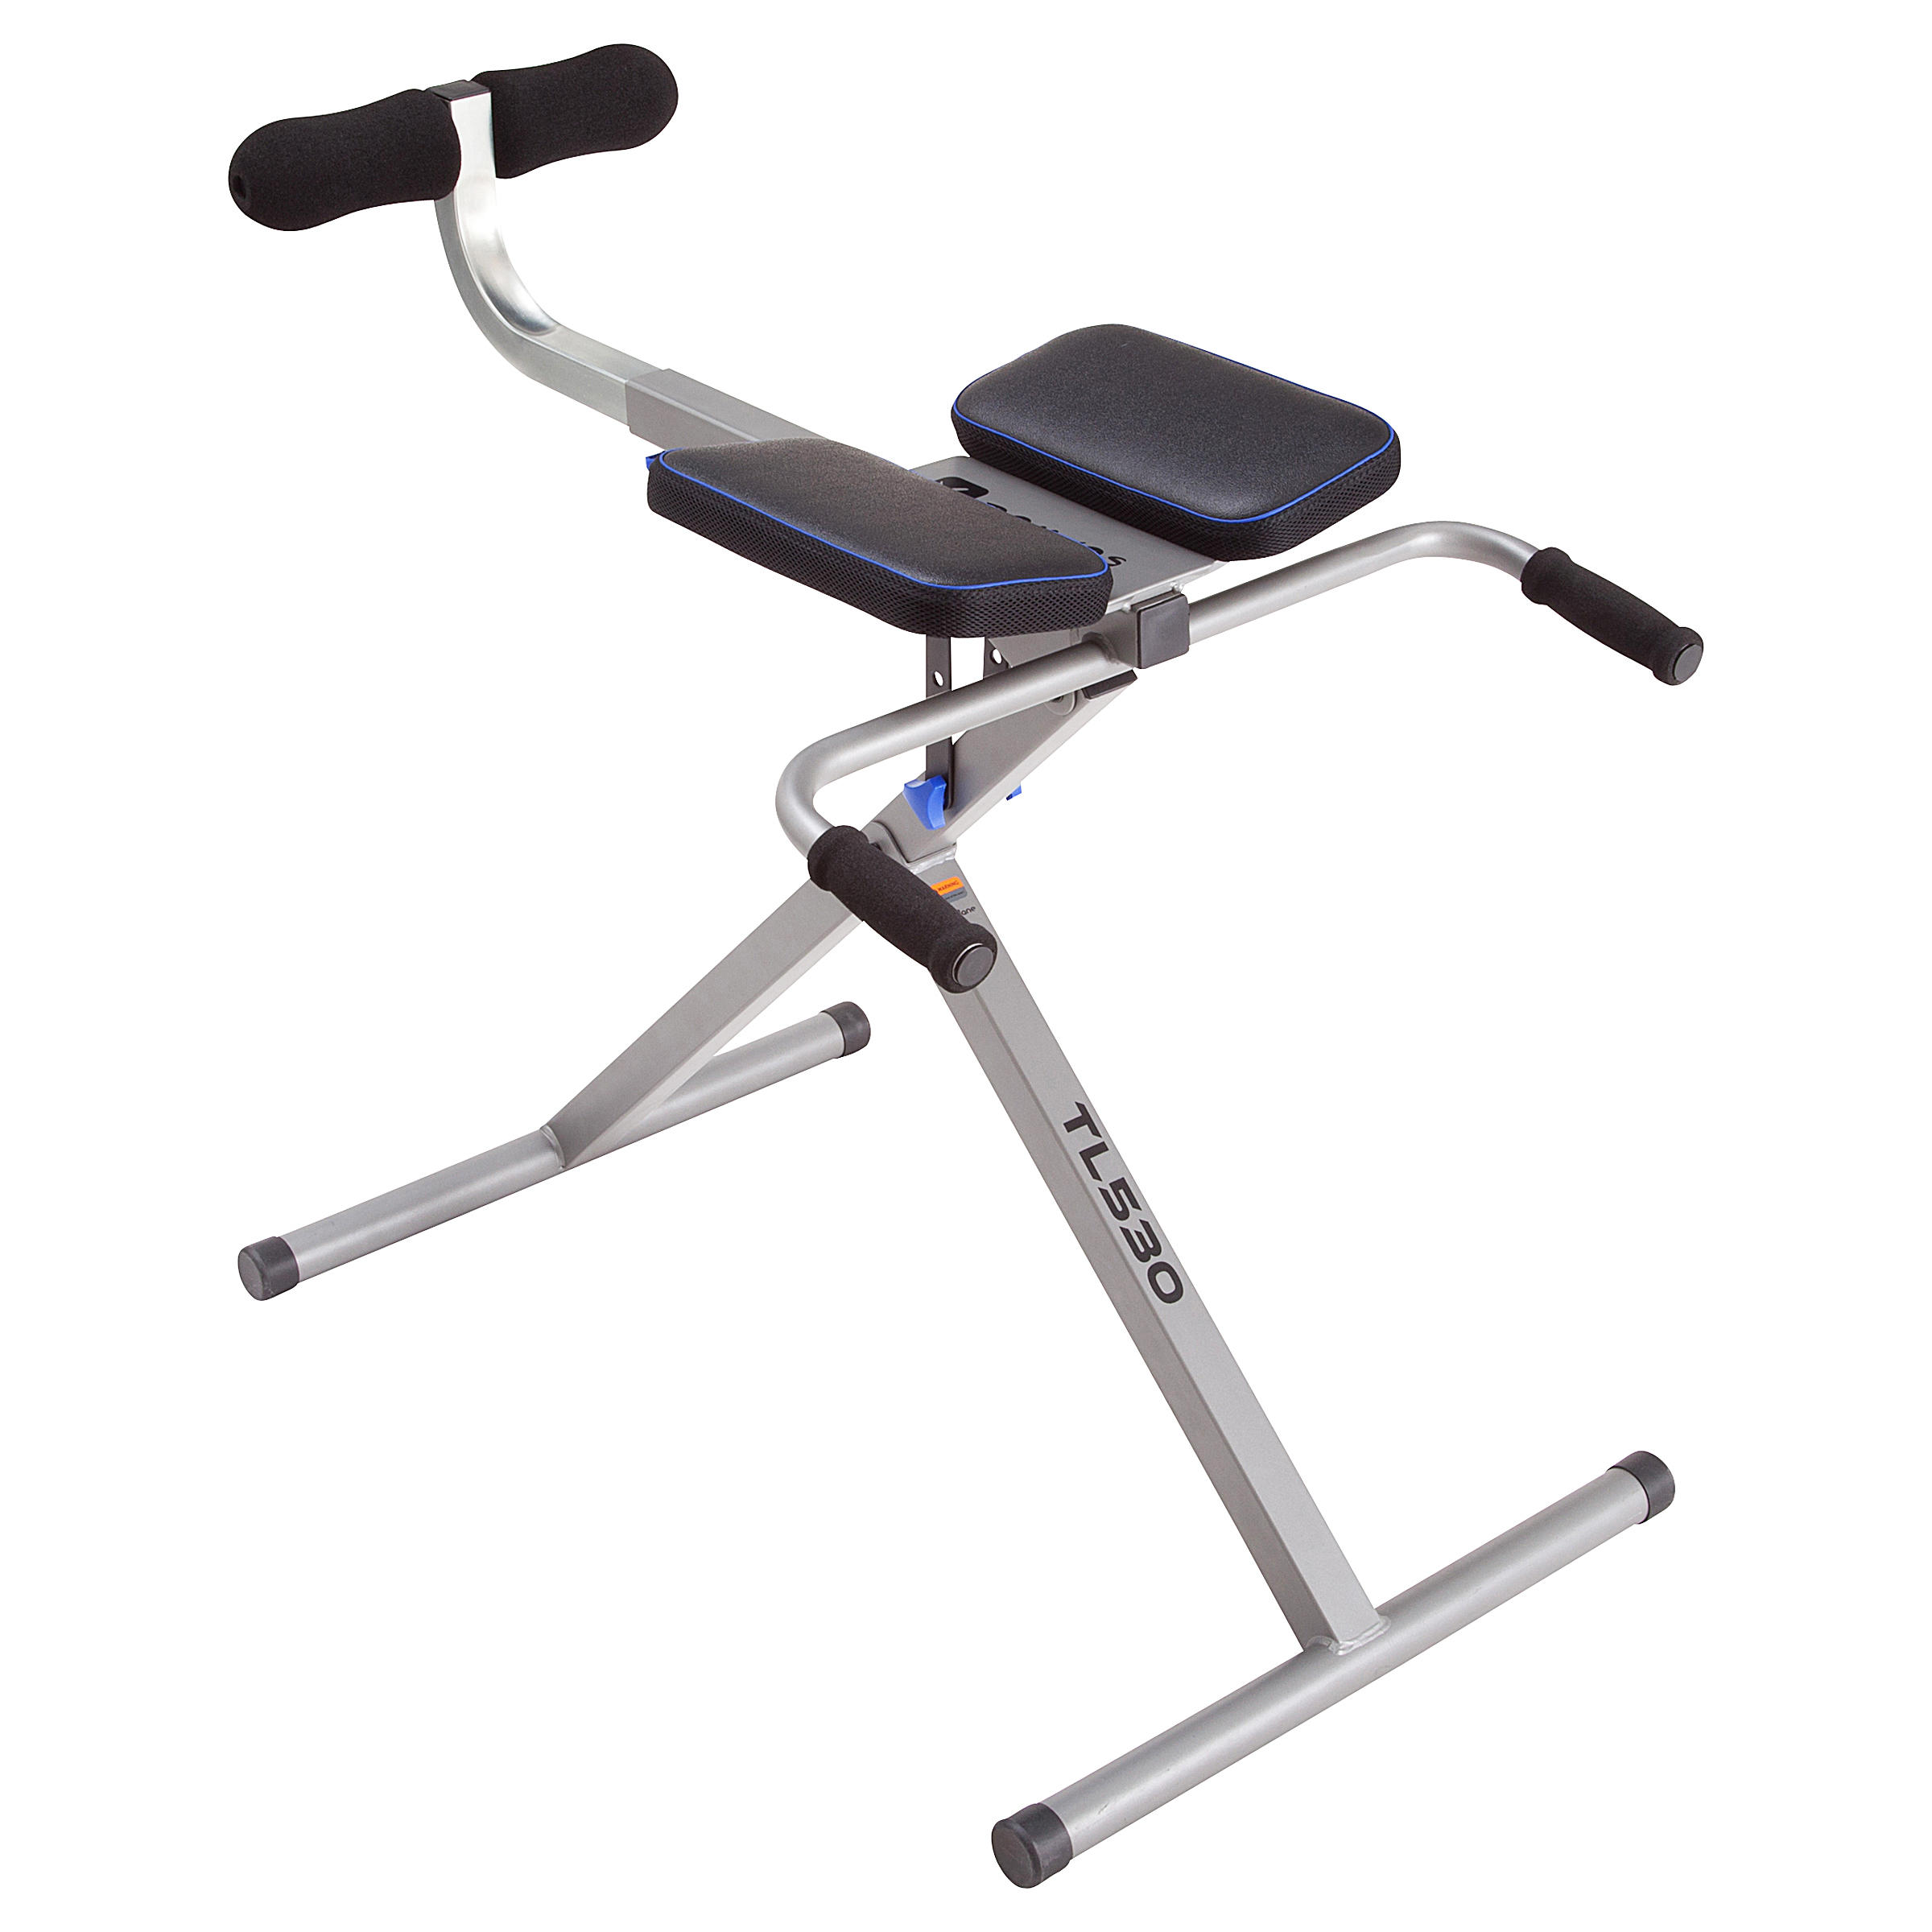 Table à lombaires musculation TL 530  Domyos by Decathlon